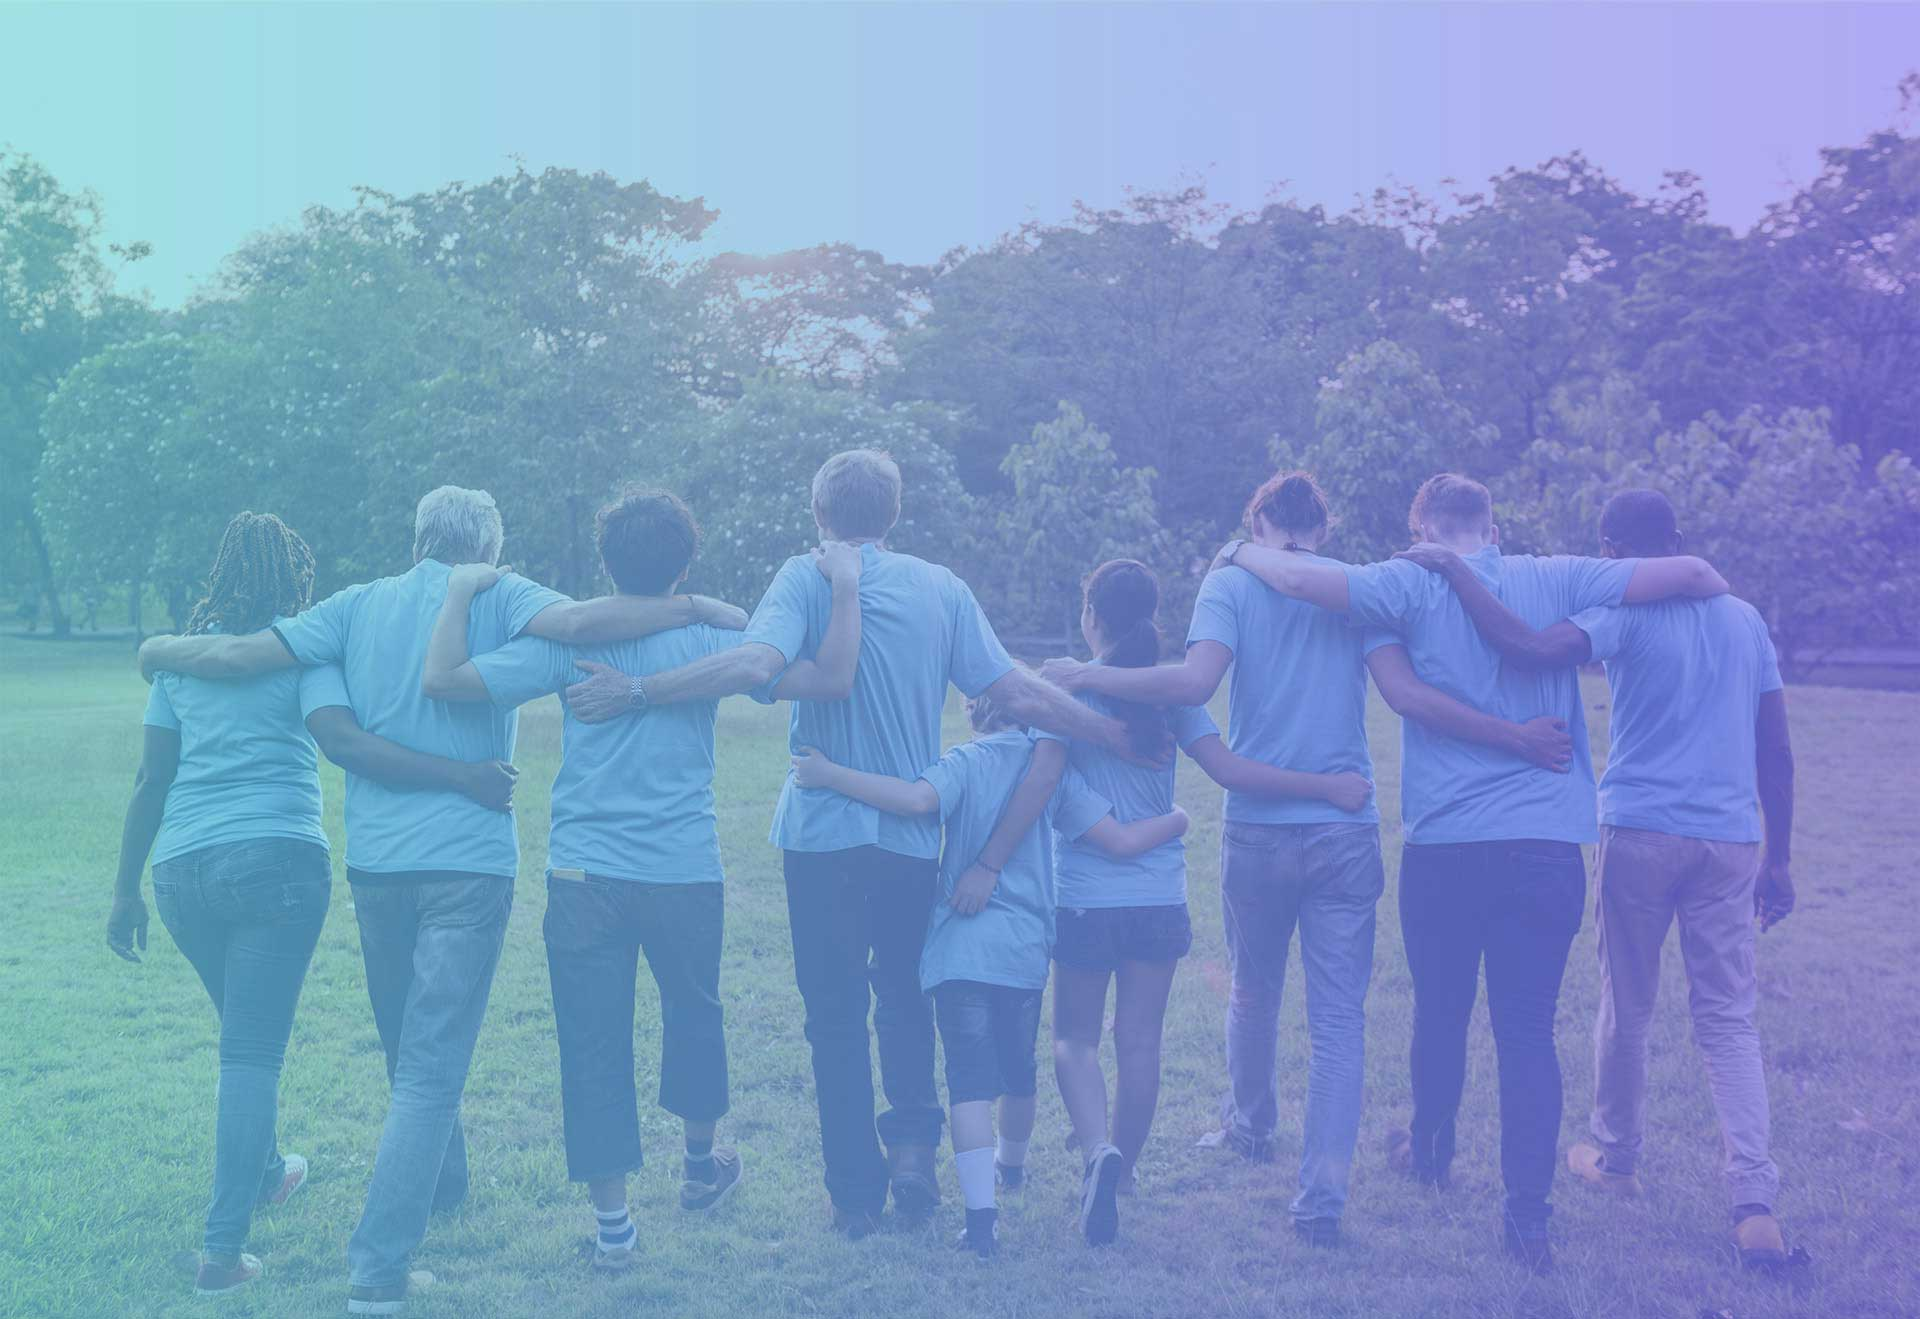 Group in blue shirts walking together | What's New? | Simcoe Community Services